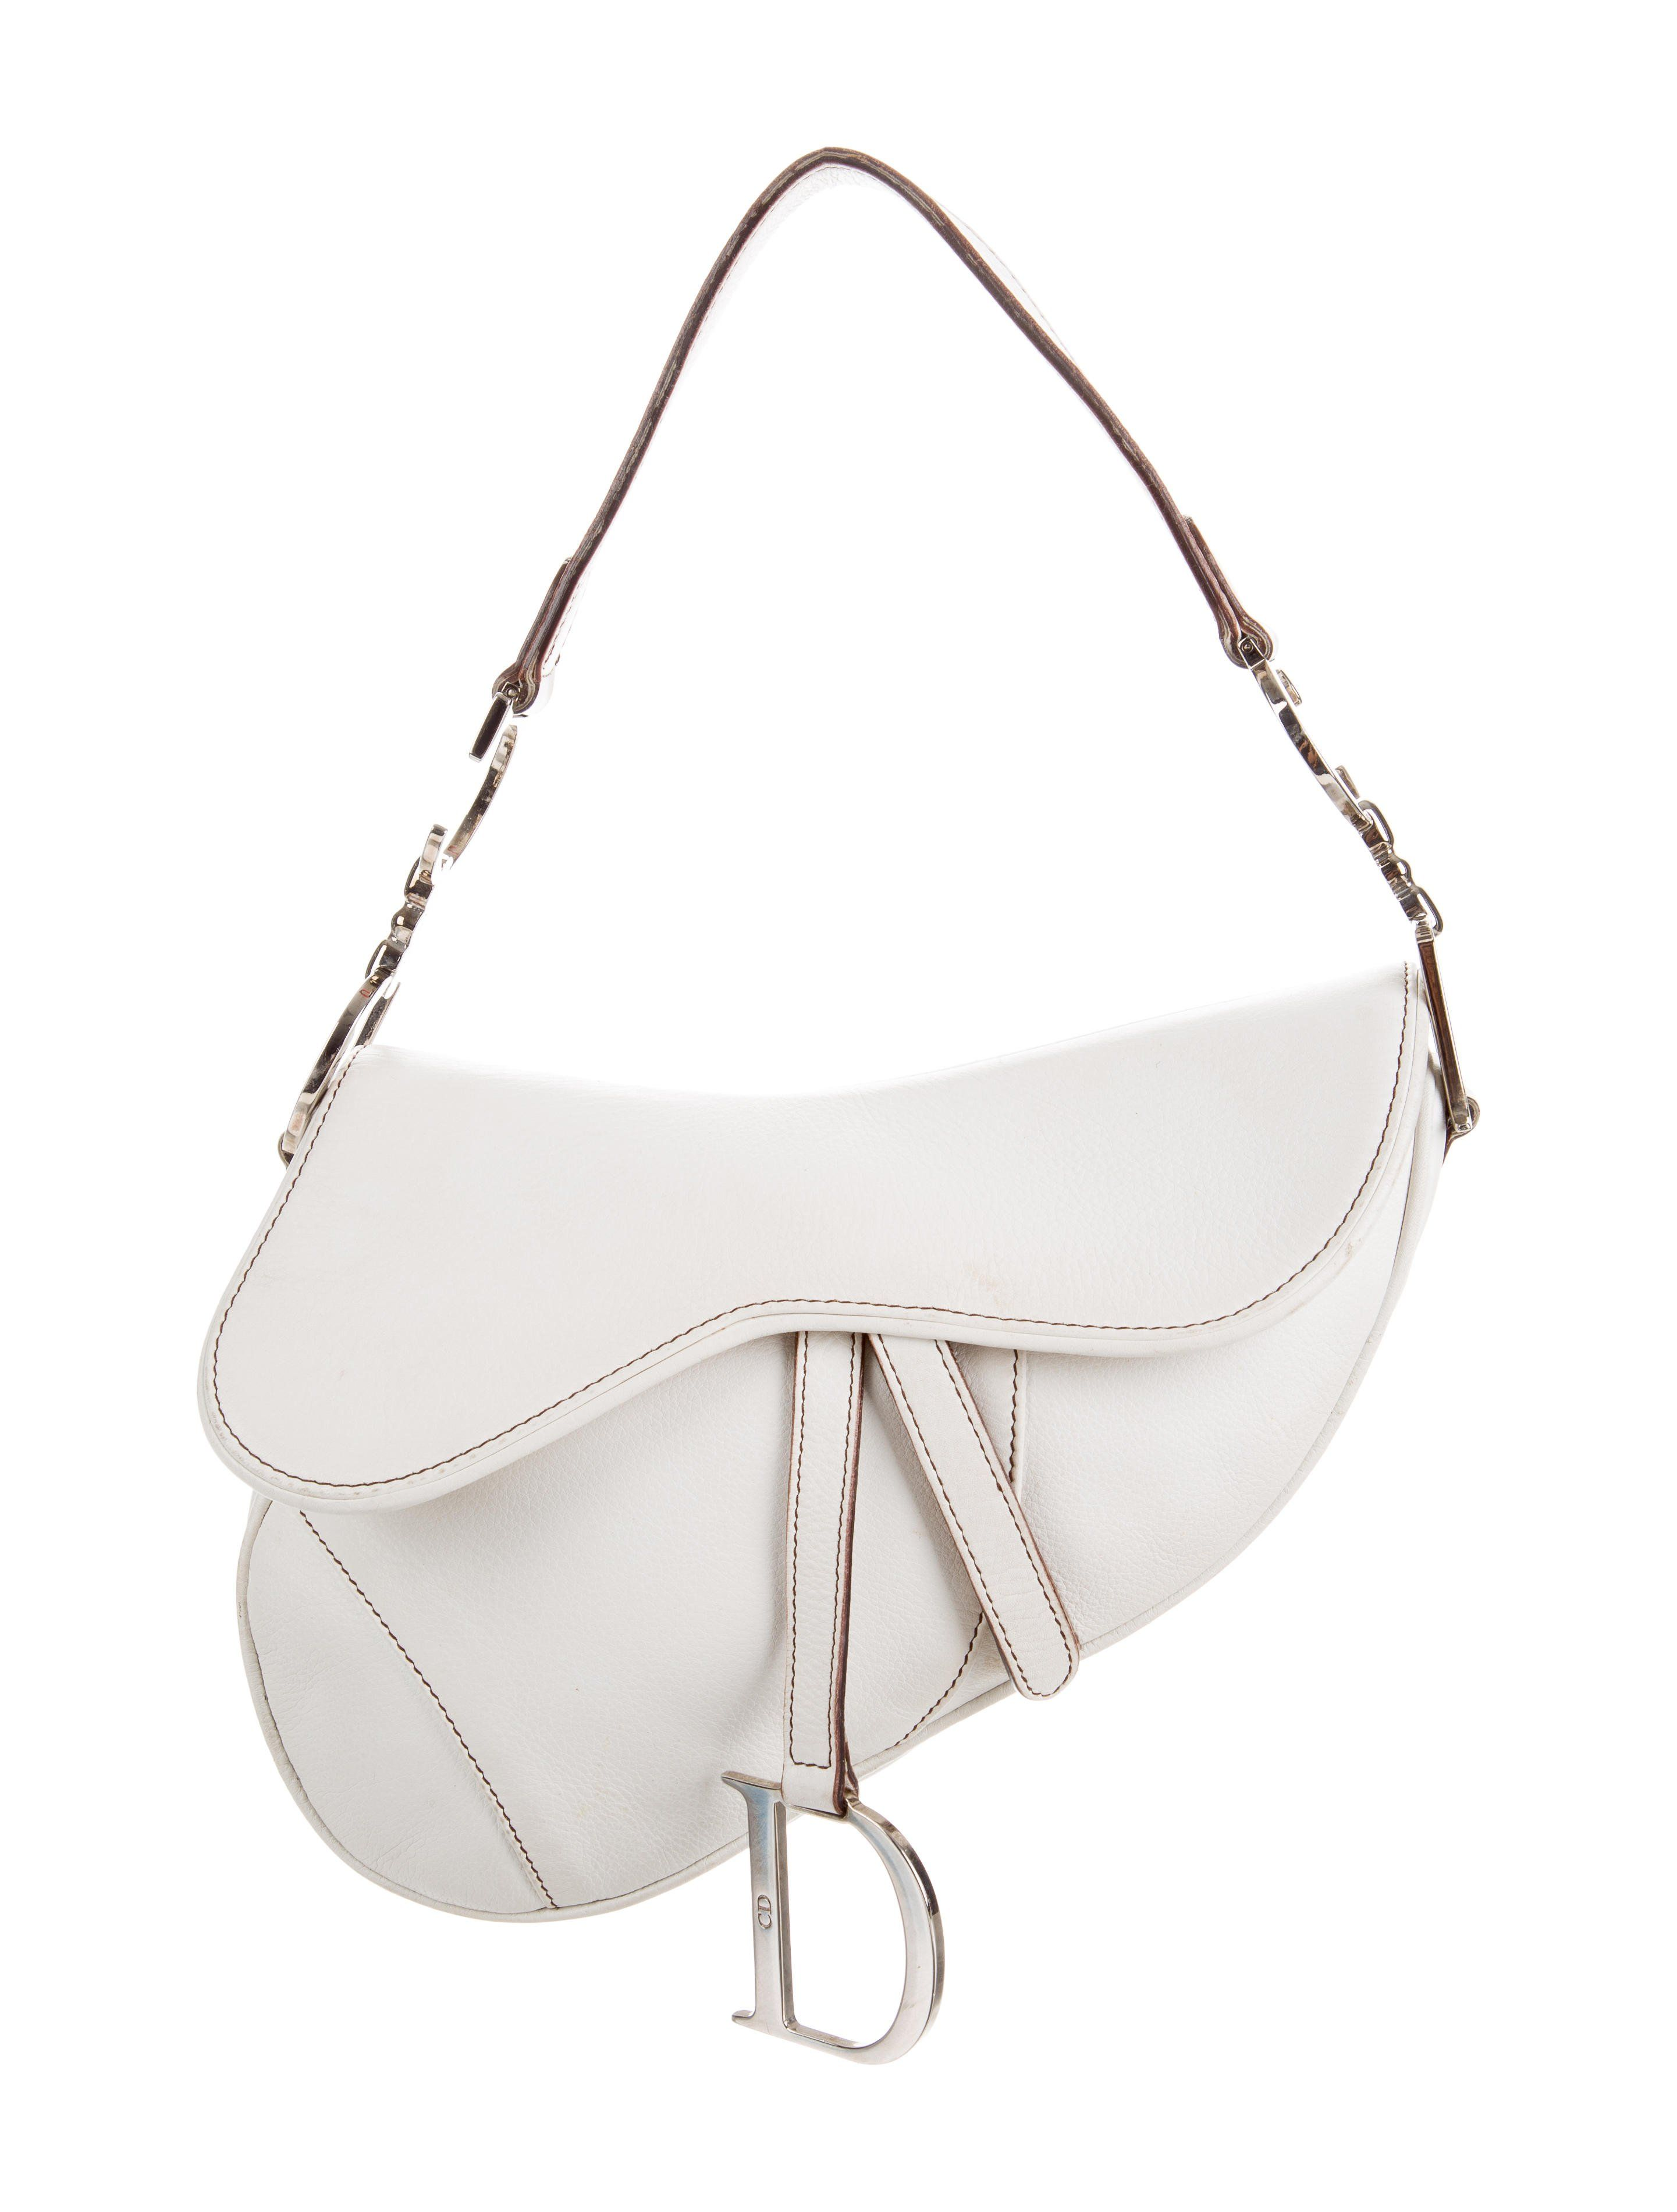 1b617a327303 White leather Christian Dior Saddle bag with silver-tone hardware